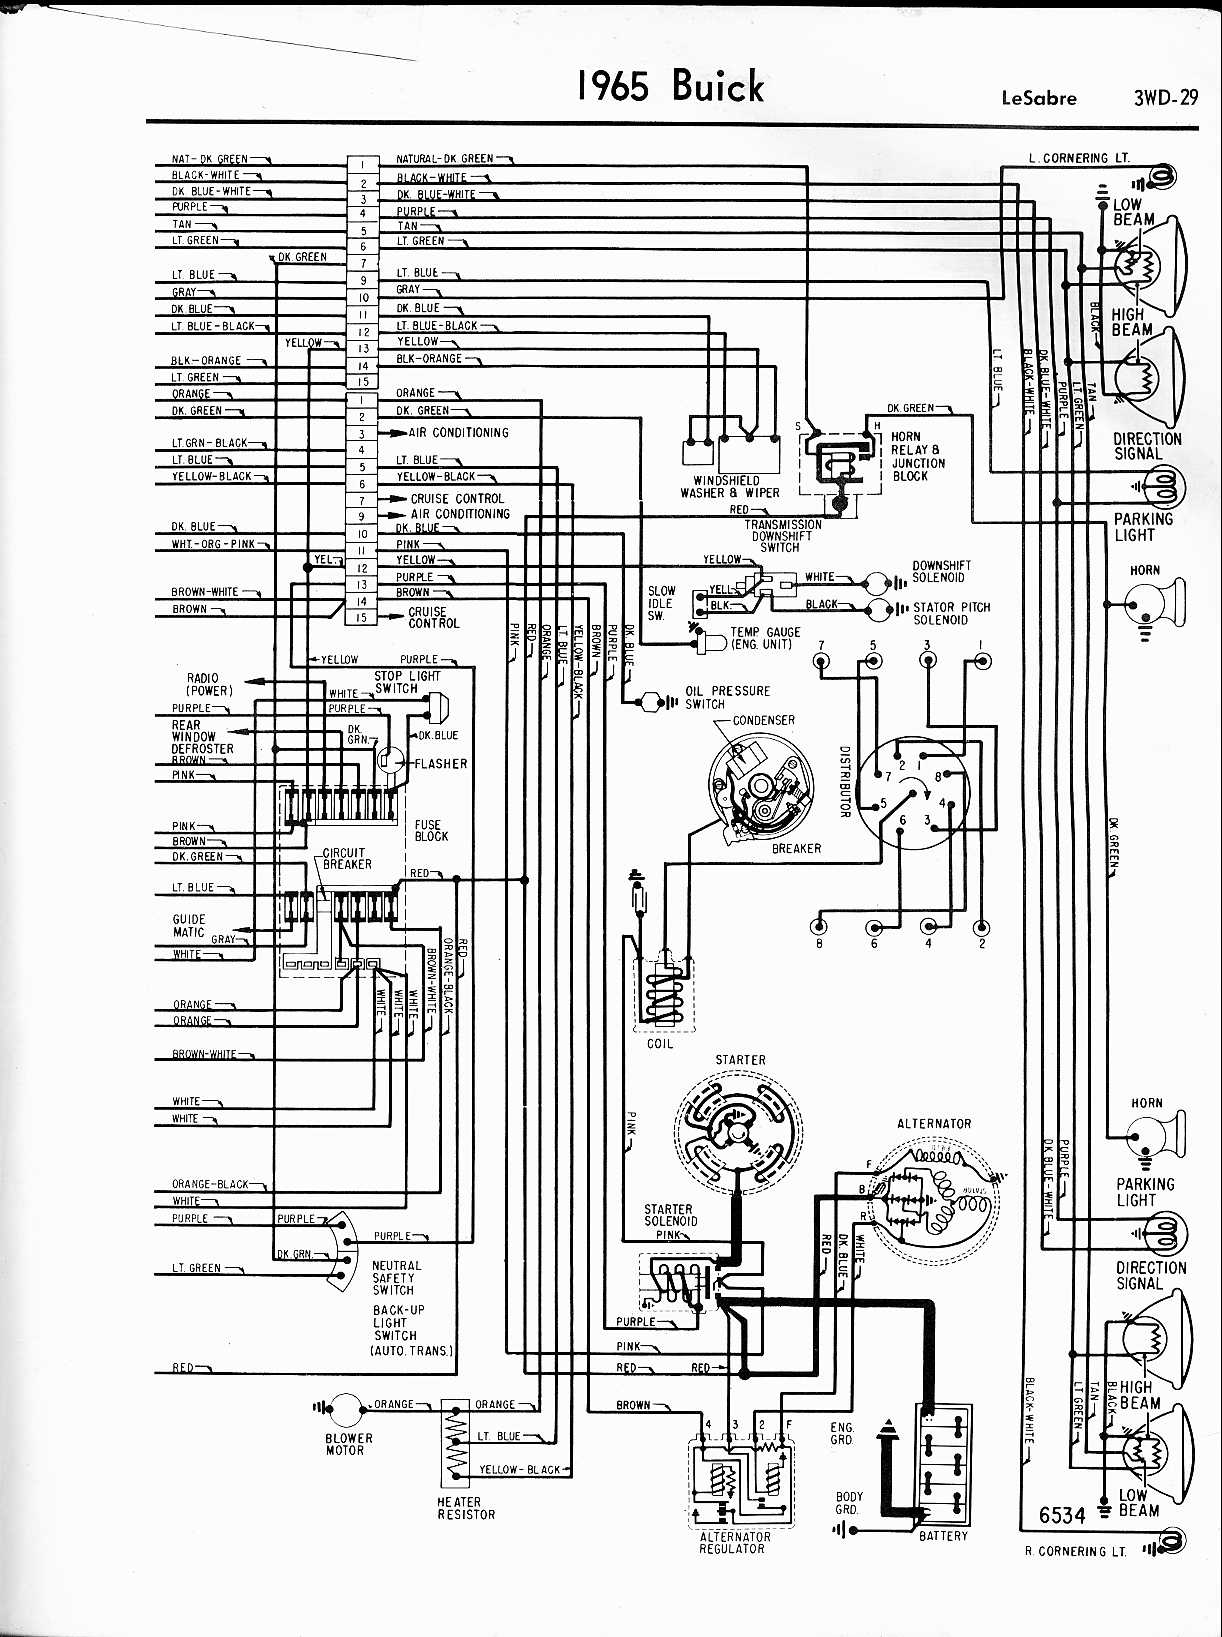 1965 buick skylark wiring diagram schematic wiring diagram u2022 rh cosmeticexpress co 67 Ford Mustang Wiring Diagram 1997 Cougar Headlight Wiring Diagram